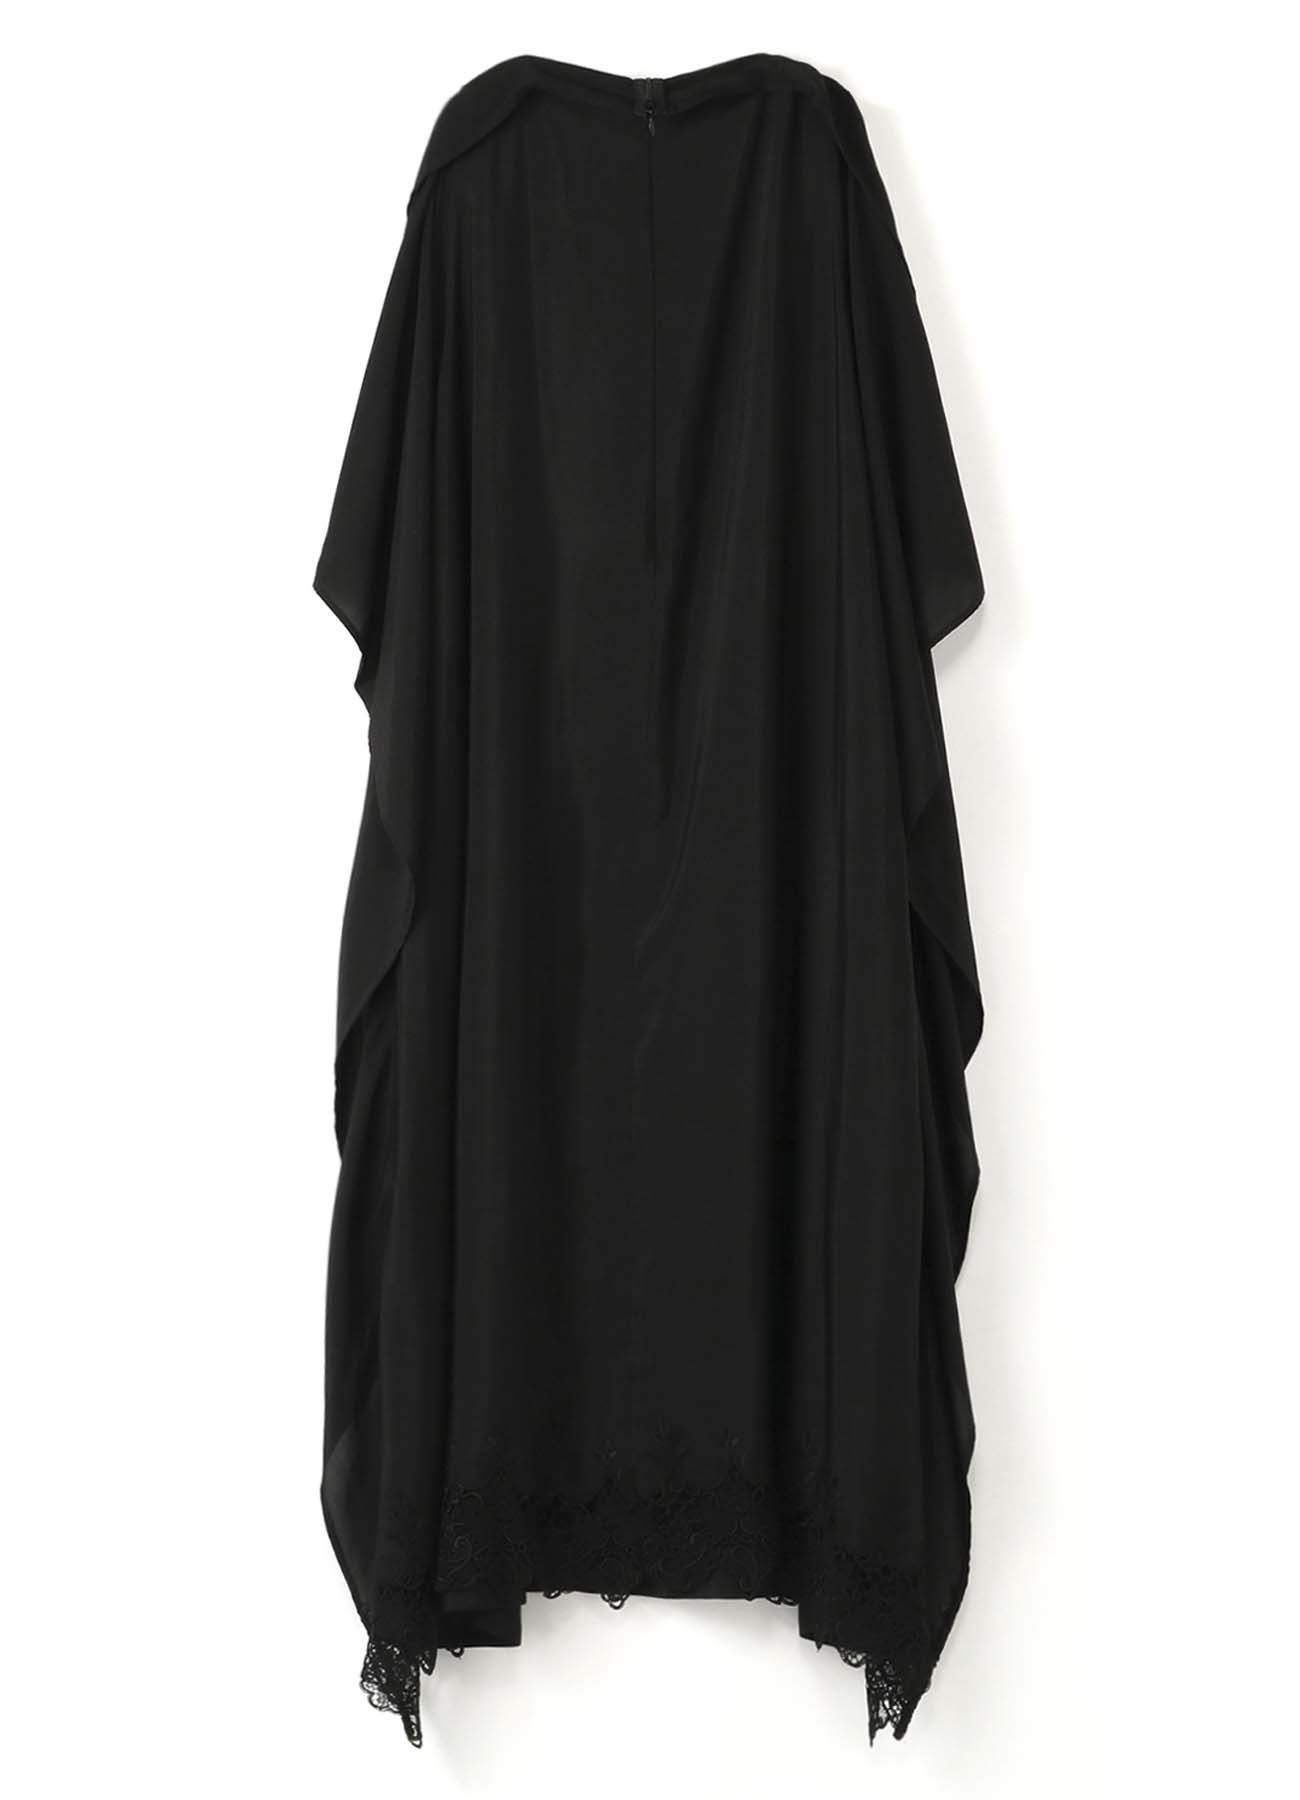 Y'sPINK RAYON ETTE SCALLOP EMBROIDERY BINDING DRESS